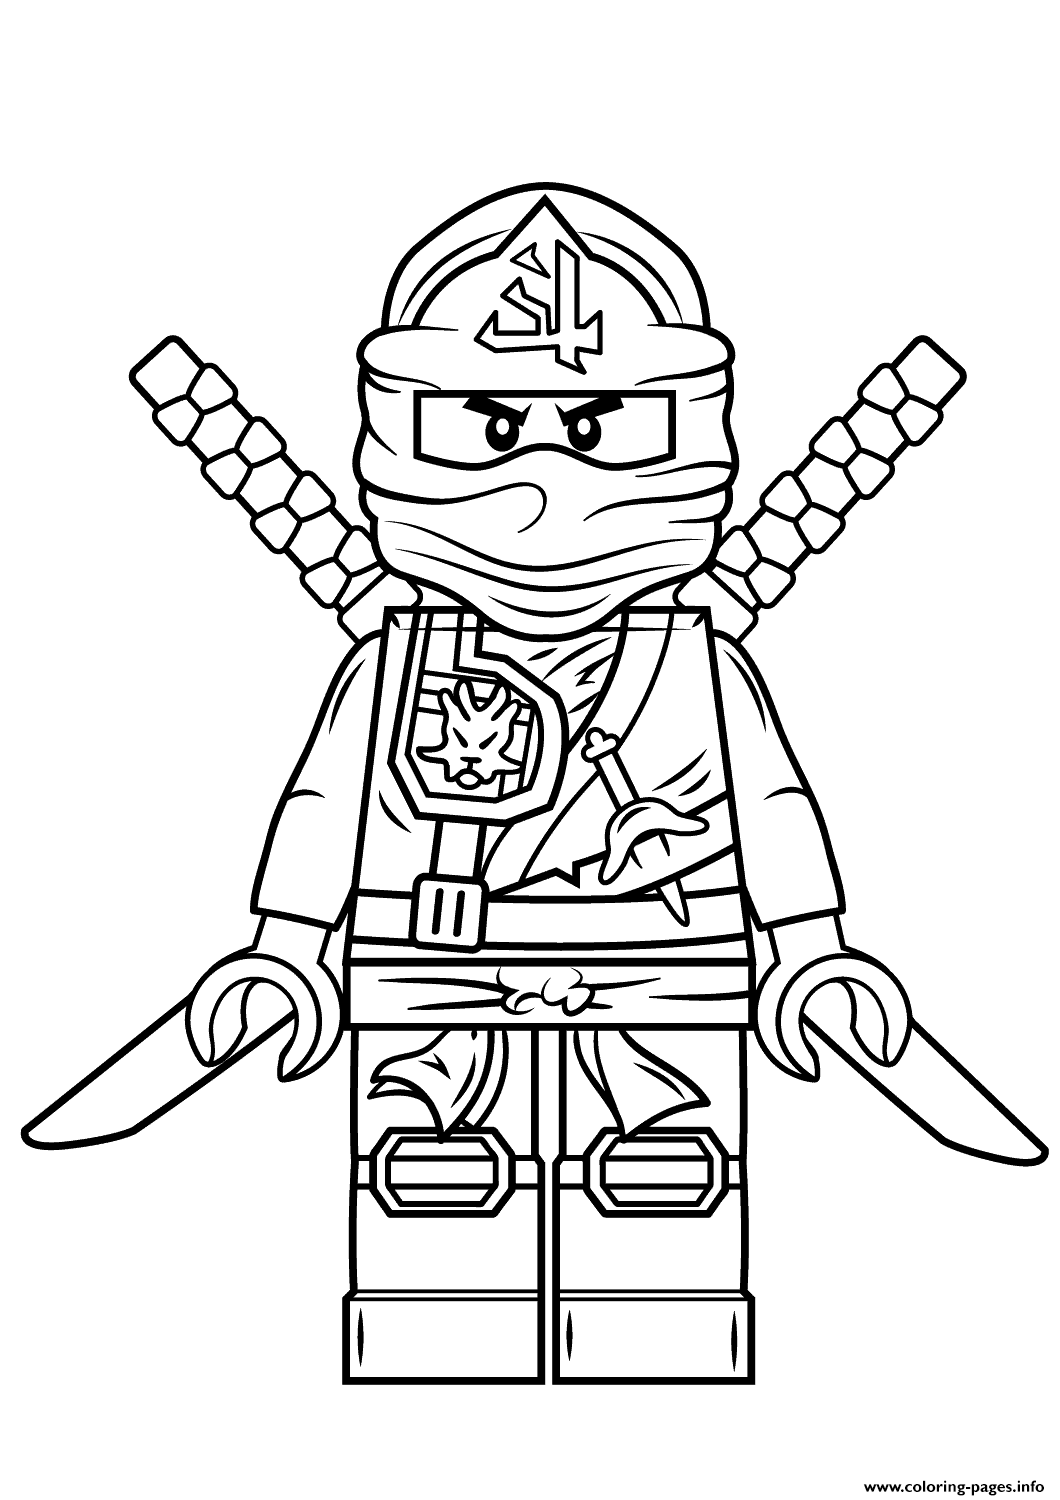 Print lego ninjago green ninja coloring pages | kids crafts ...